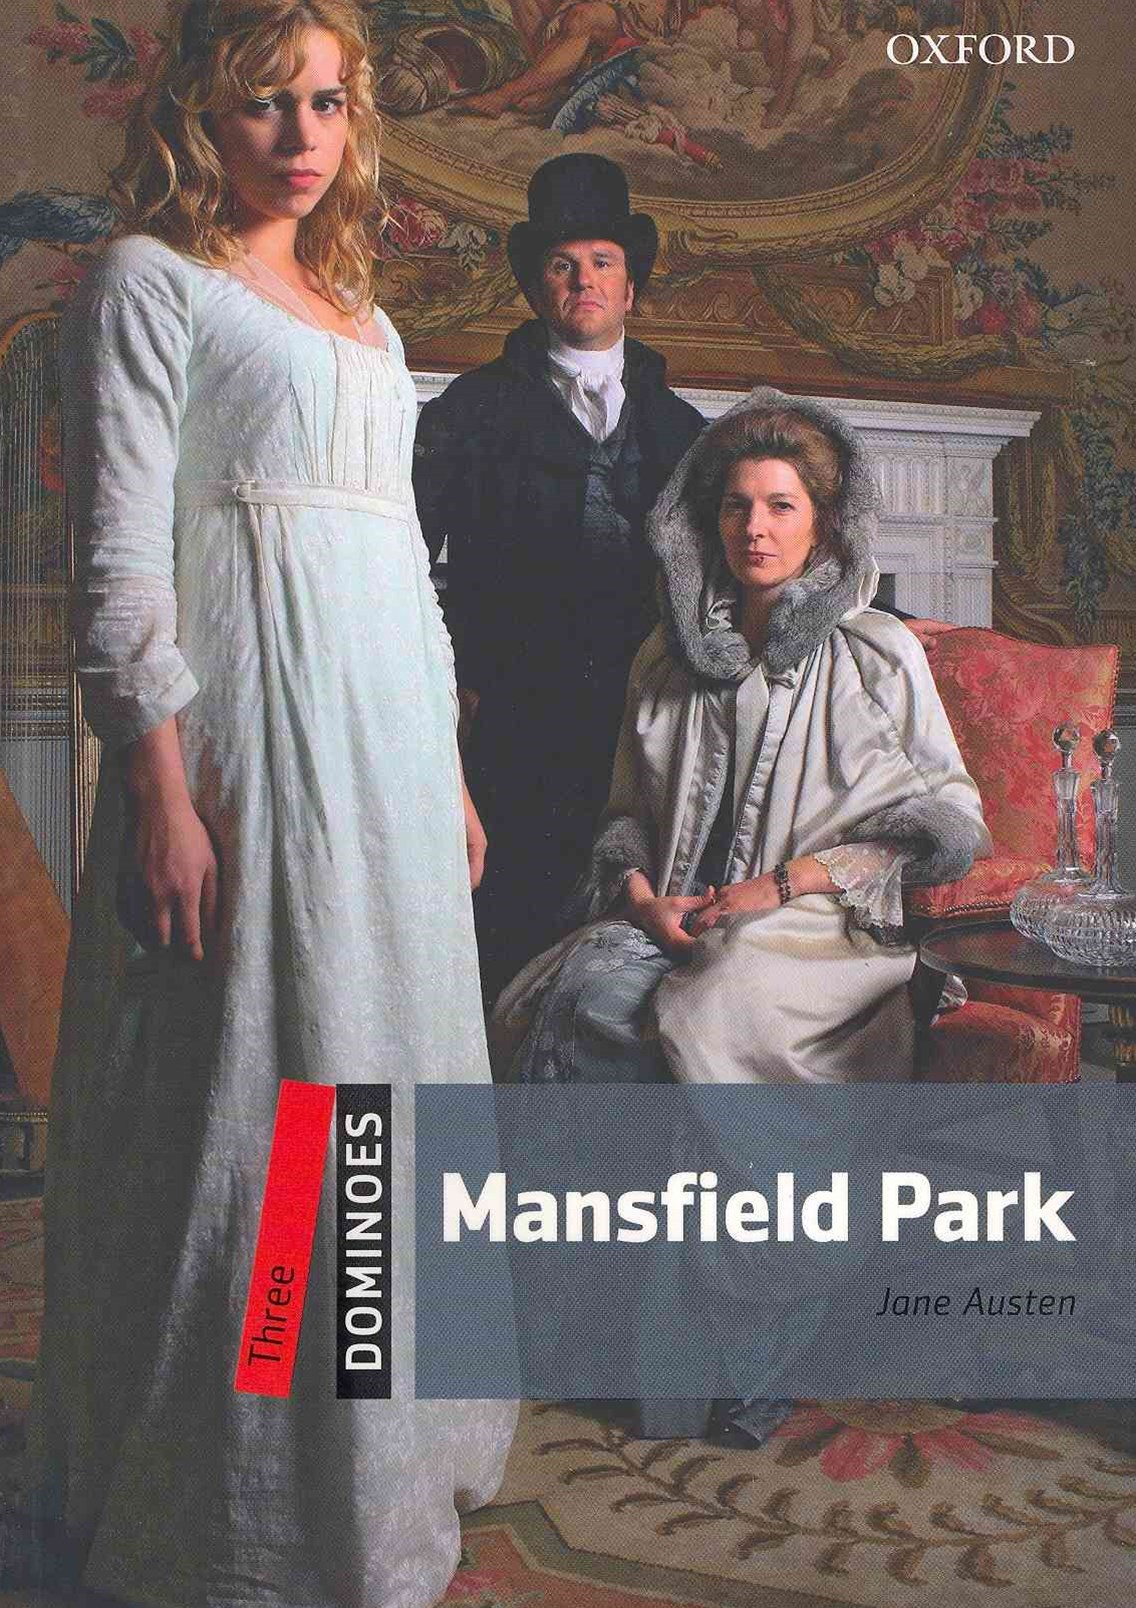 Dominoes Three Mansfield Park